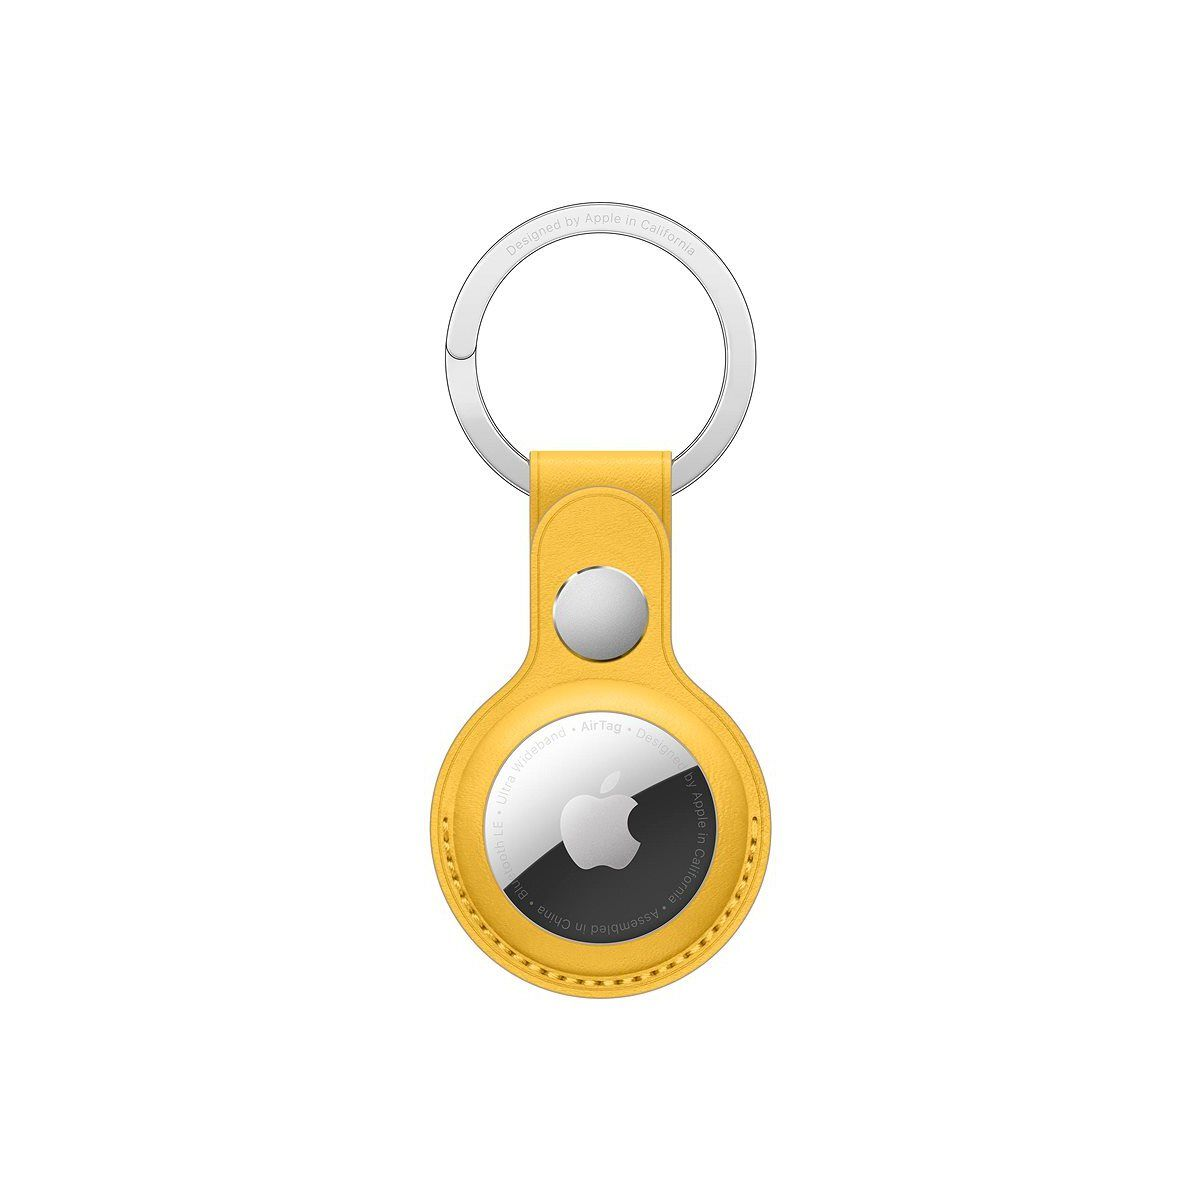 AirTag Leather Key Ring - Meyer Lemon / SK - MM063ZM/A